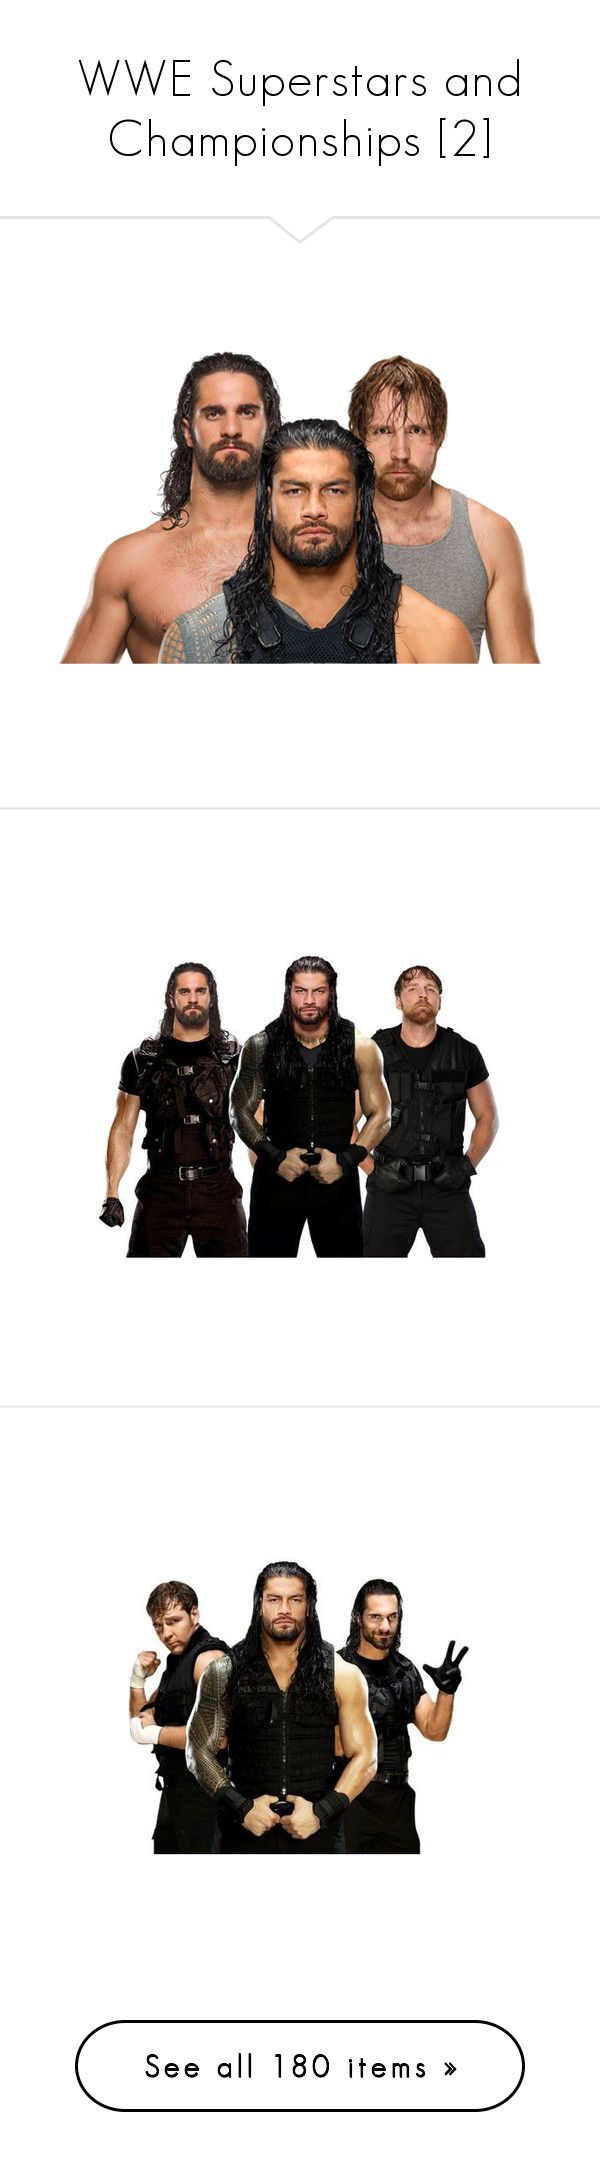 """""""WWE Superstars and Championships [2]"""" by caramara3 ❤ liked on Polyvore featuring home, home decor, superstars, wwe, pictures, backgrounds, misc, wrestling, music and accessories"""